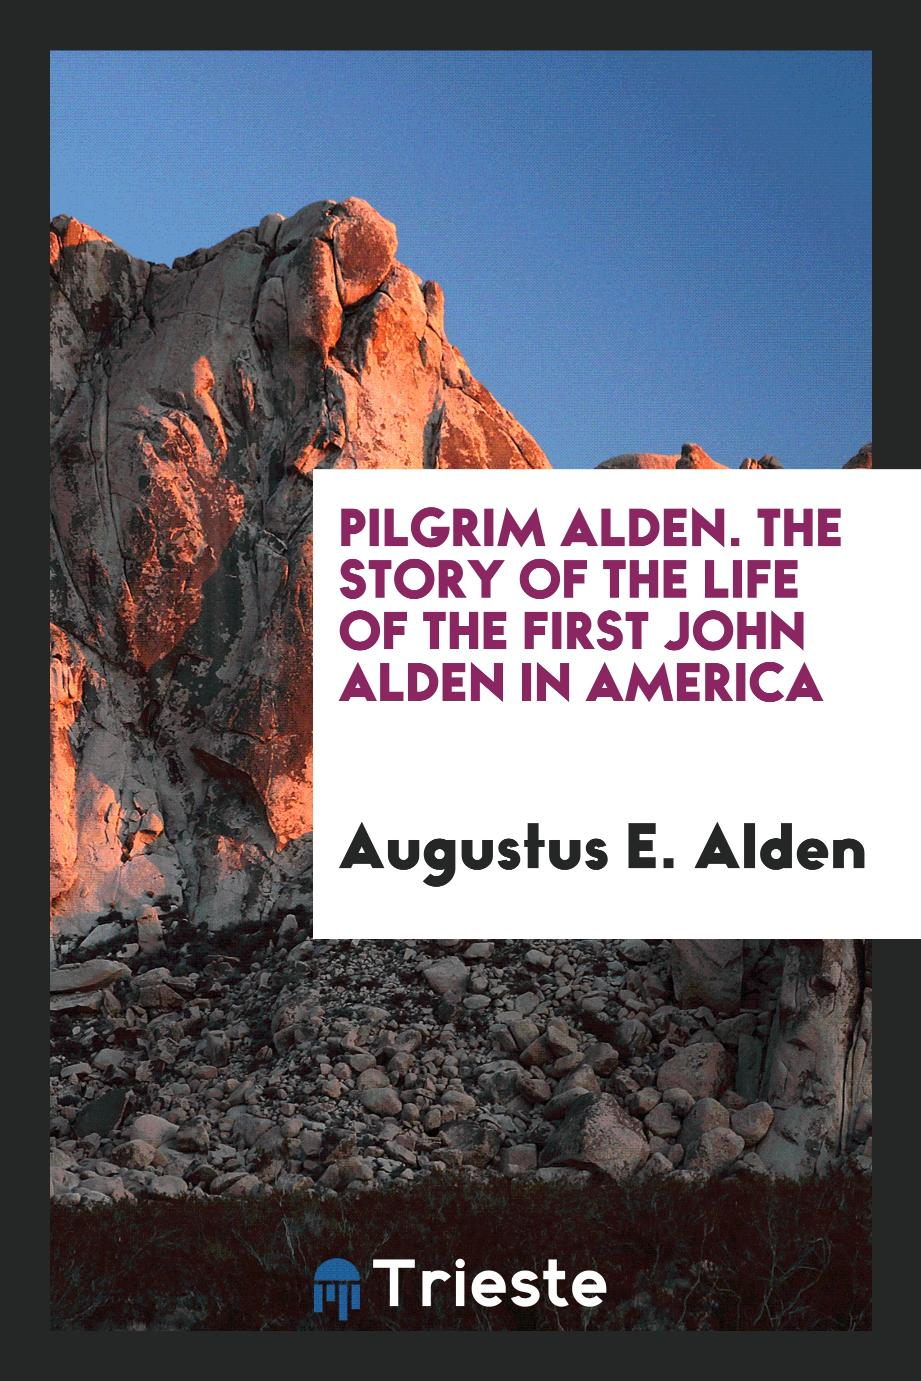 Pilgrim Alden. The Story of the Life of the First John Alden in America